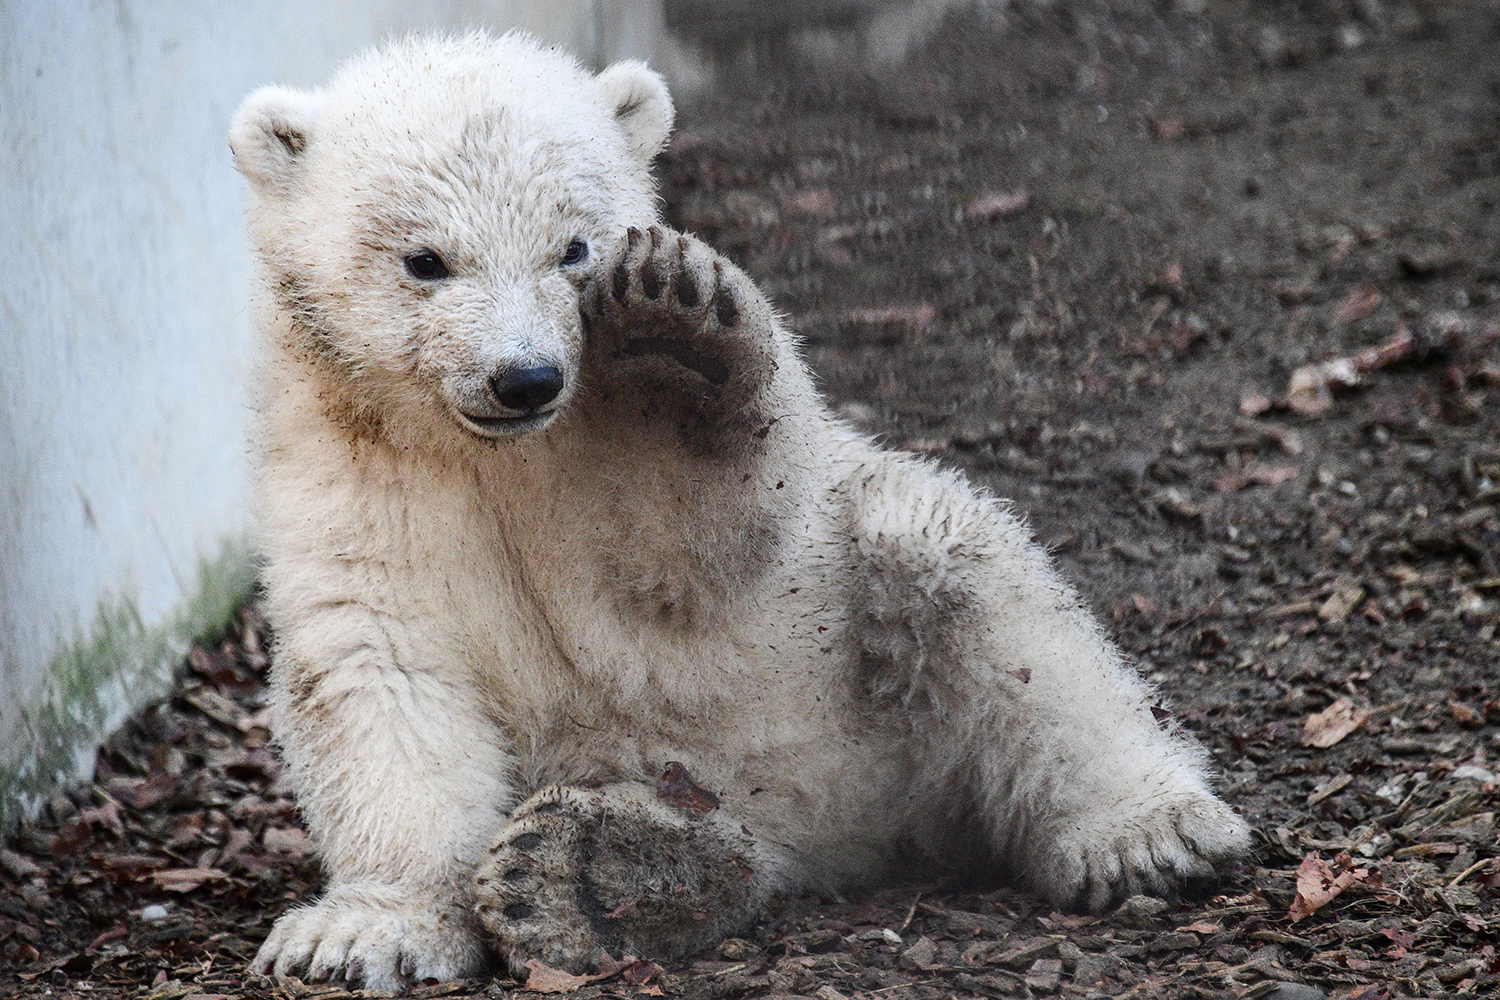 A polar bear cub named Kara plays in her enclosure at the Zoological and Botanical Park in Mulhouse, eastern France, on Feb. 25. SEBASTIEN BOZON/AFP via Getty Images